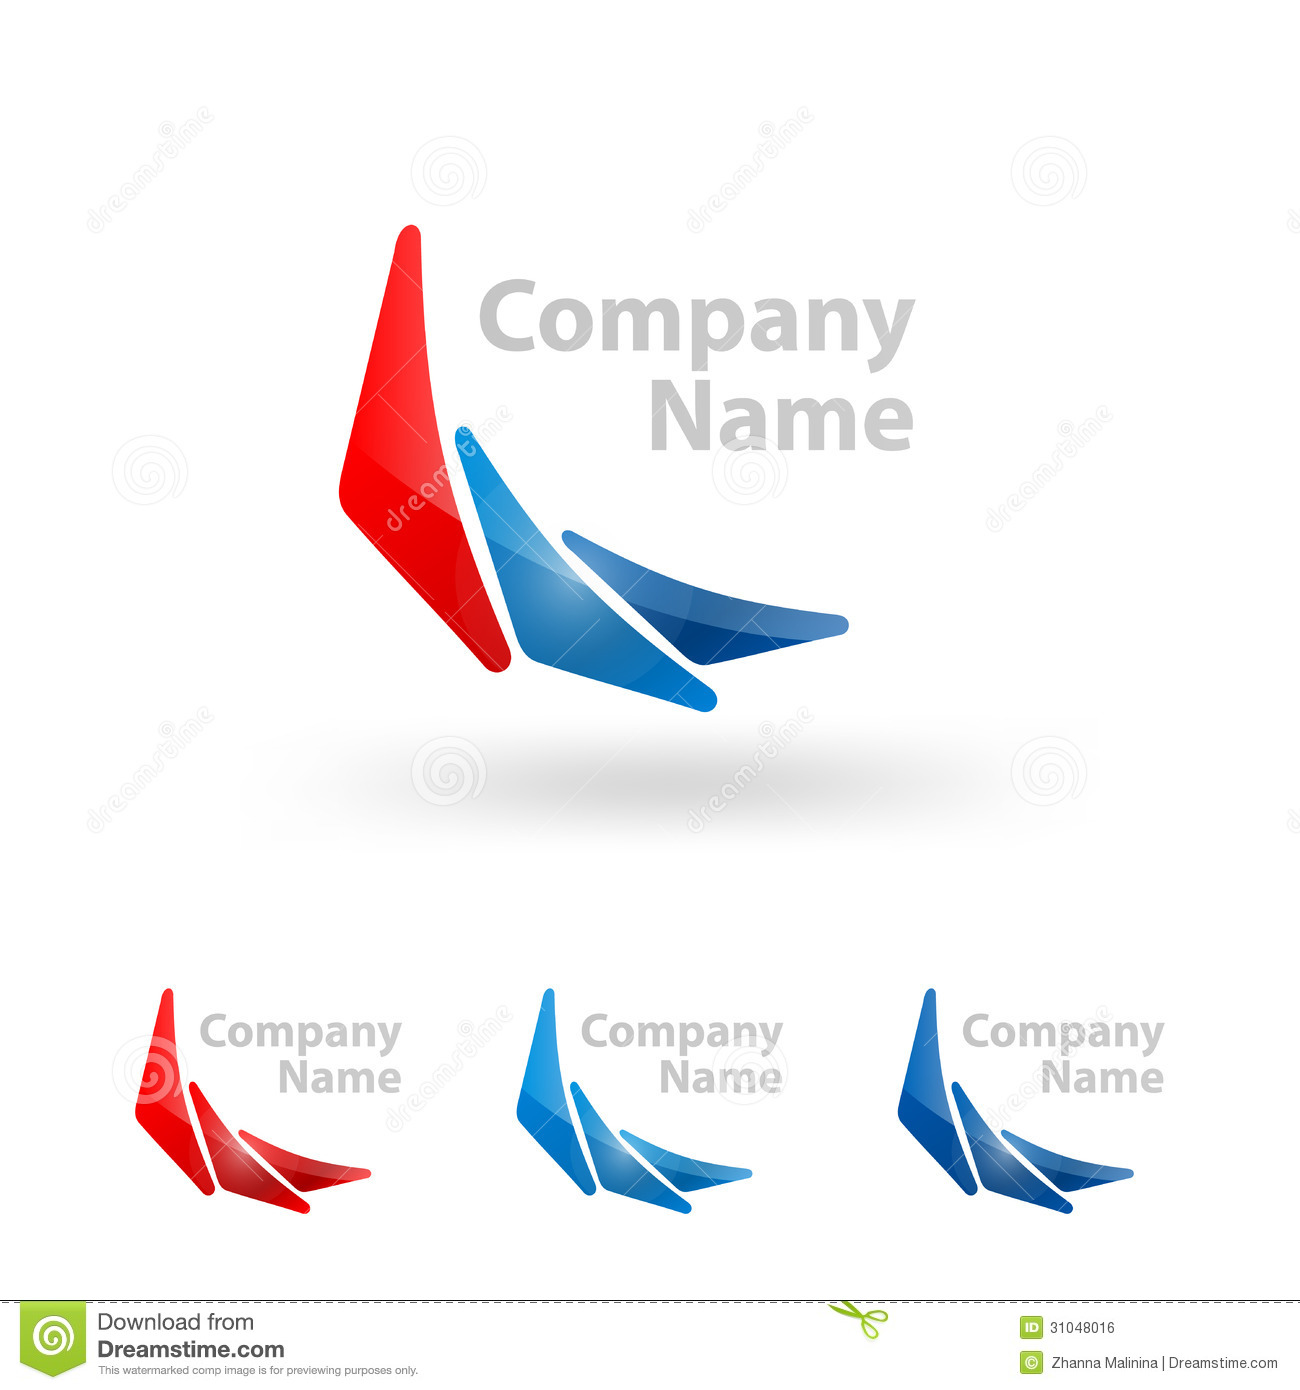 Triangle logo company name design stock vector illustration of triangle logo company name design cheaphphosting